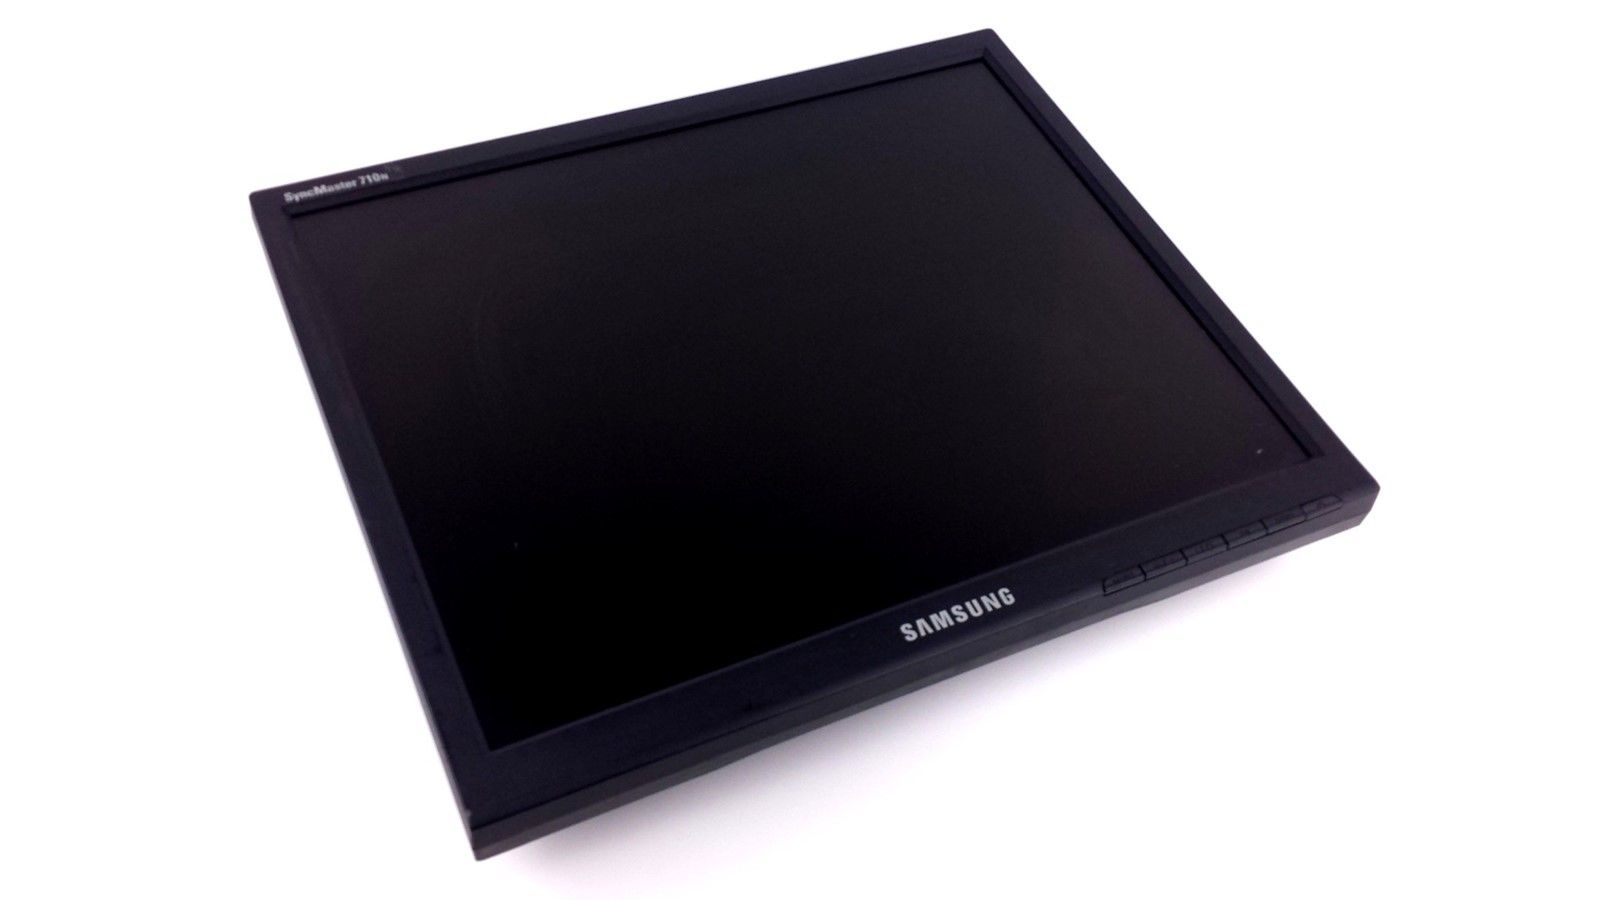 "Samsung GH17LS SyncMaster 710N LCD Computer Monitor 17"" Black MJ17ASKB"